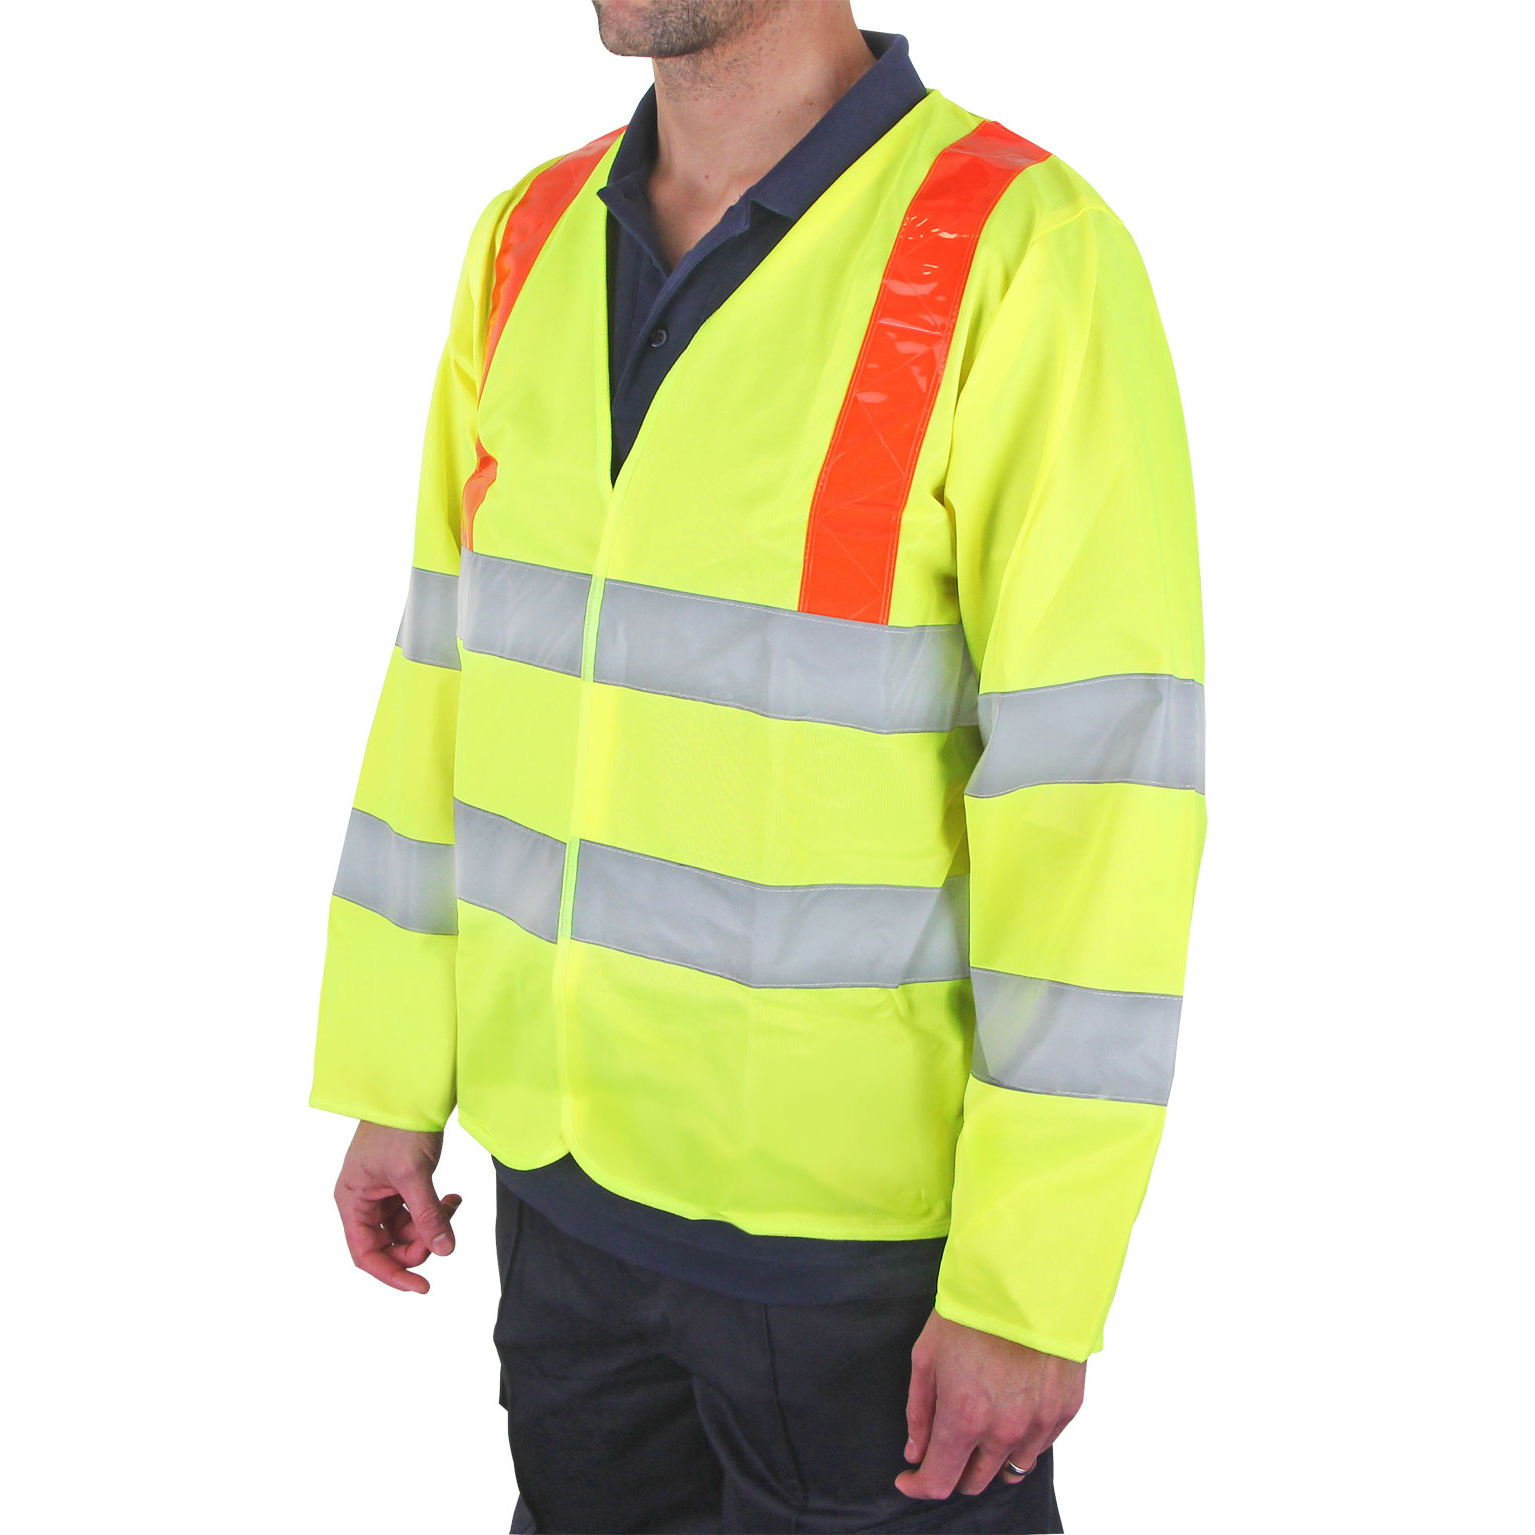 B-Seen High Visibility Long Sleeved Jerkin Medium Saturn Yellow/Red Ref PKJENG(RT)M *Upto 3 Day Leadtime*